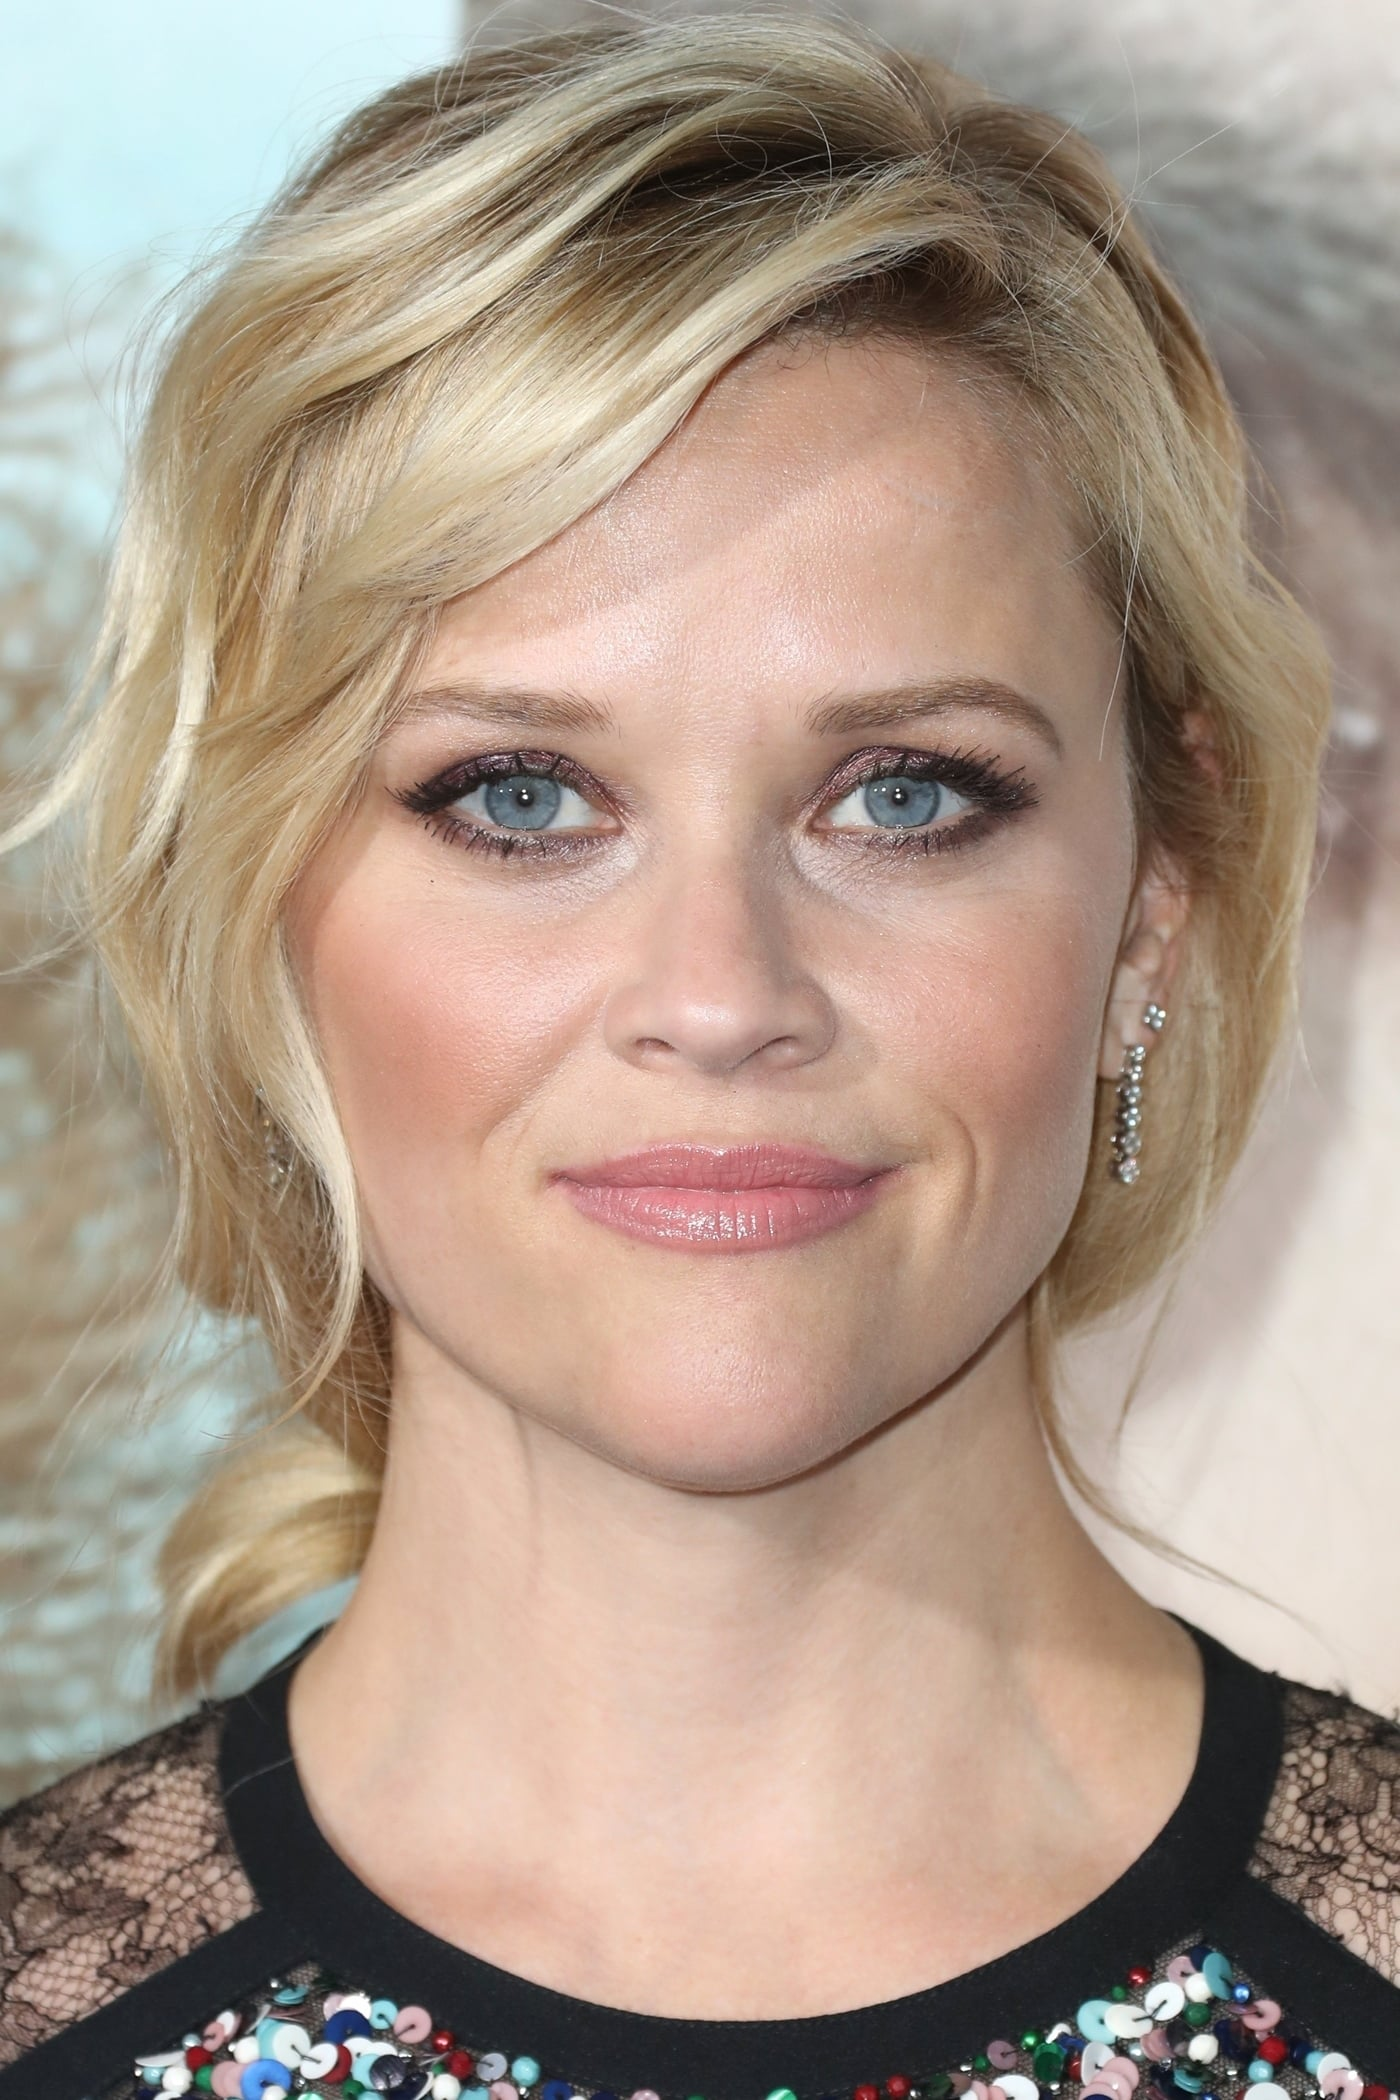 reese witherspoon watch solarmovie